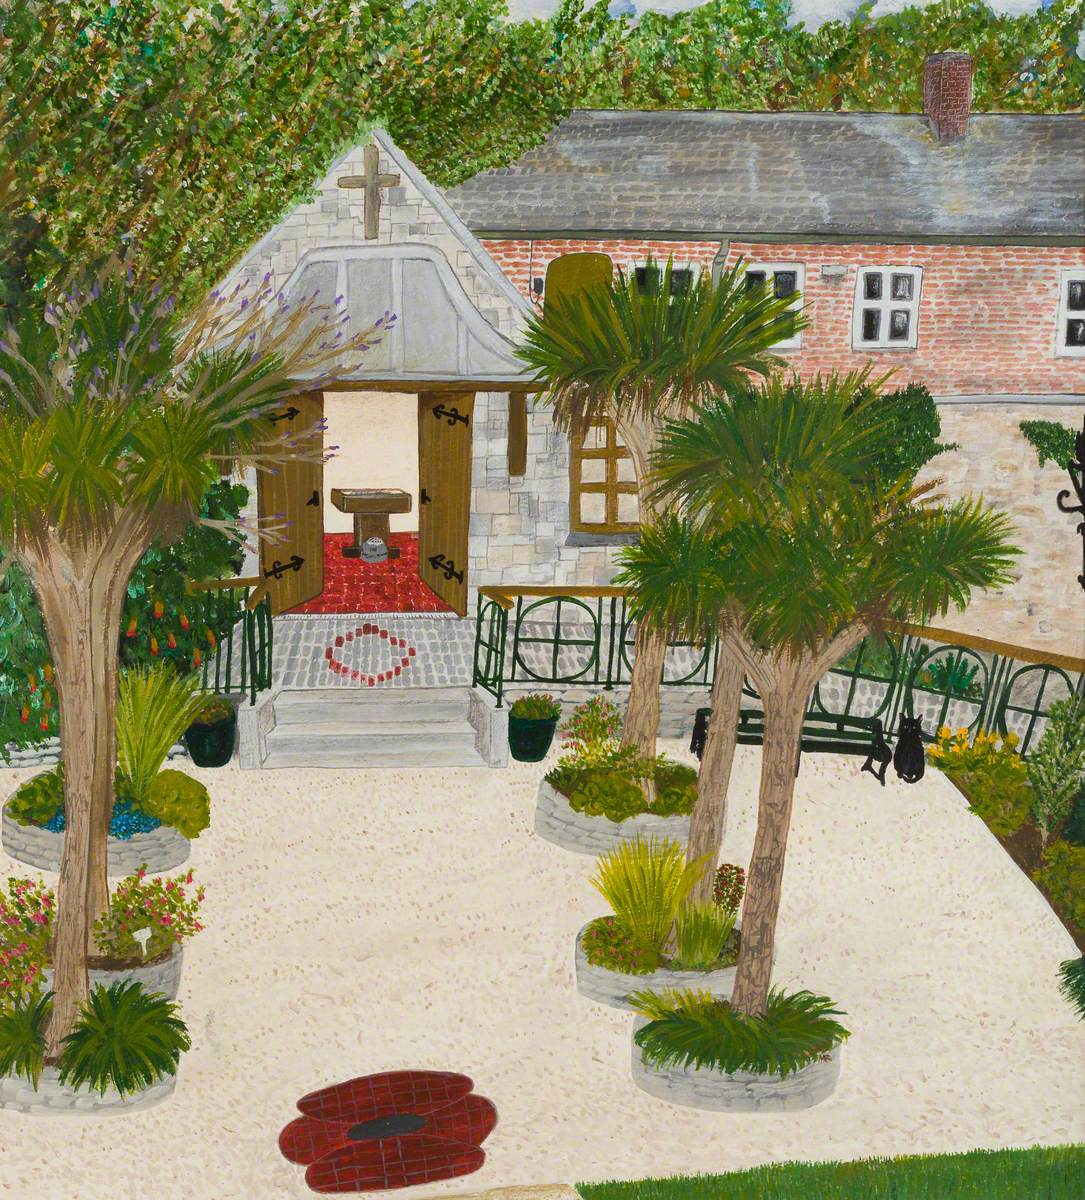 Garden of Remembrance, Penlee House Gallery and Museum